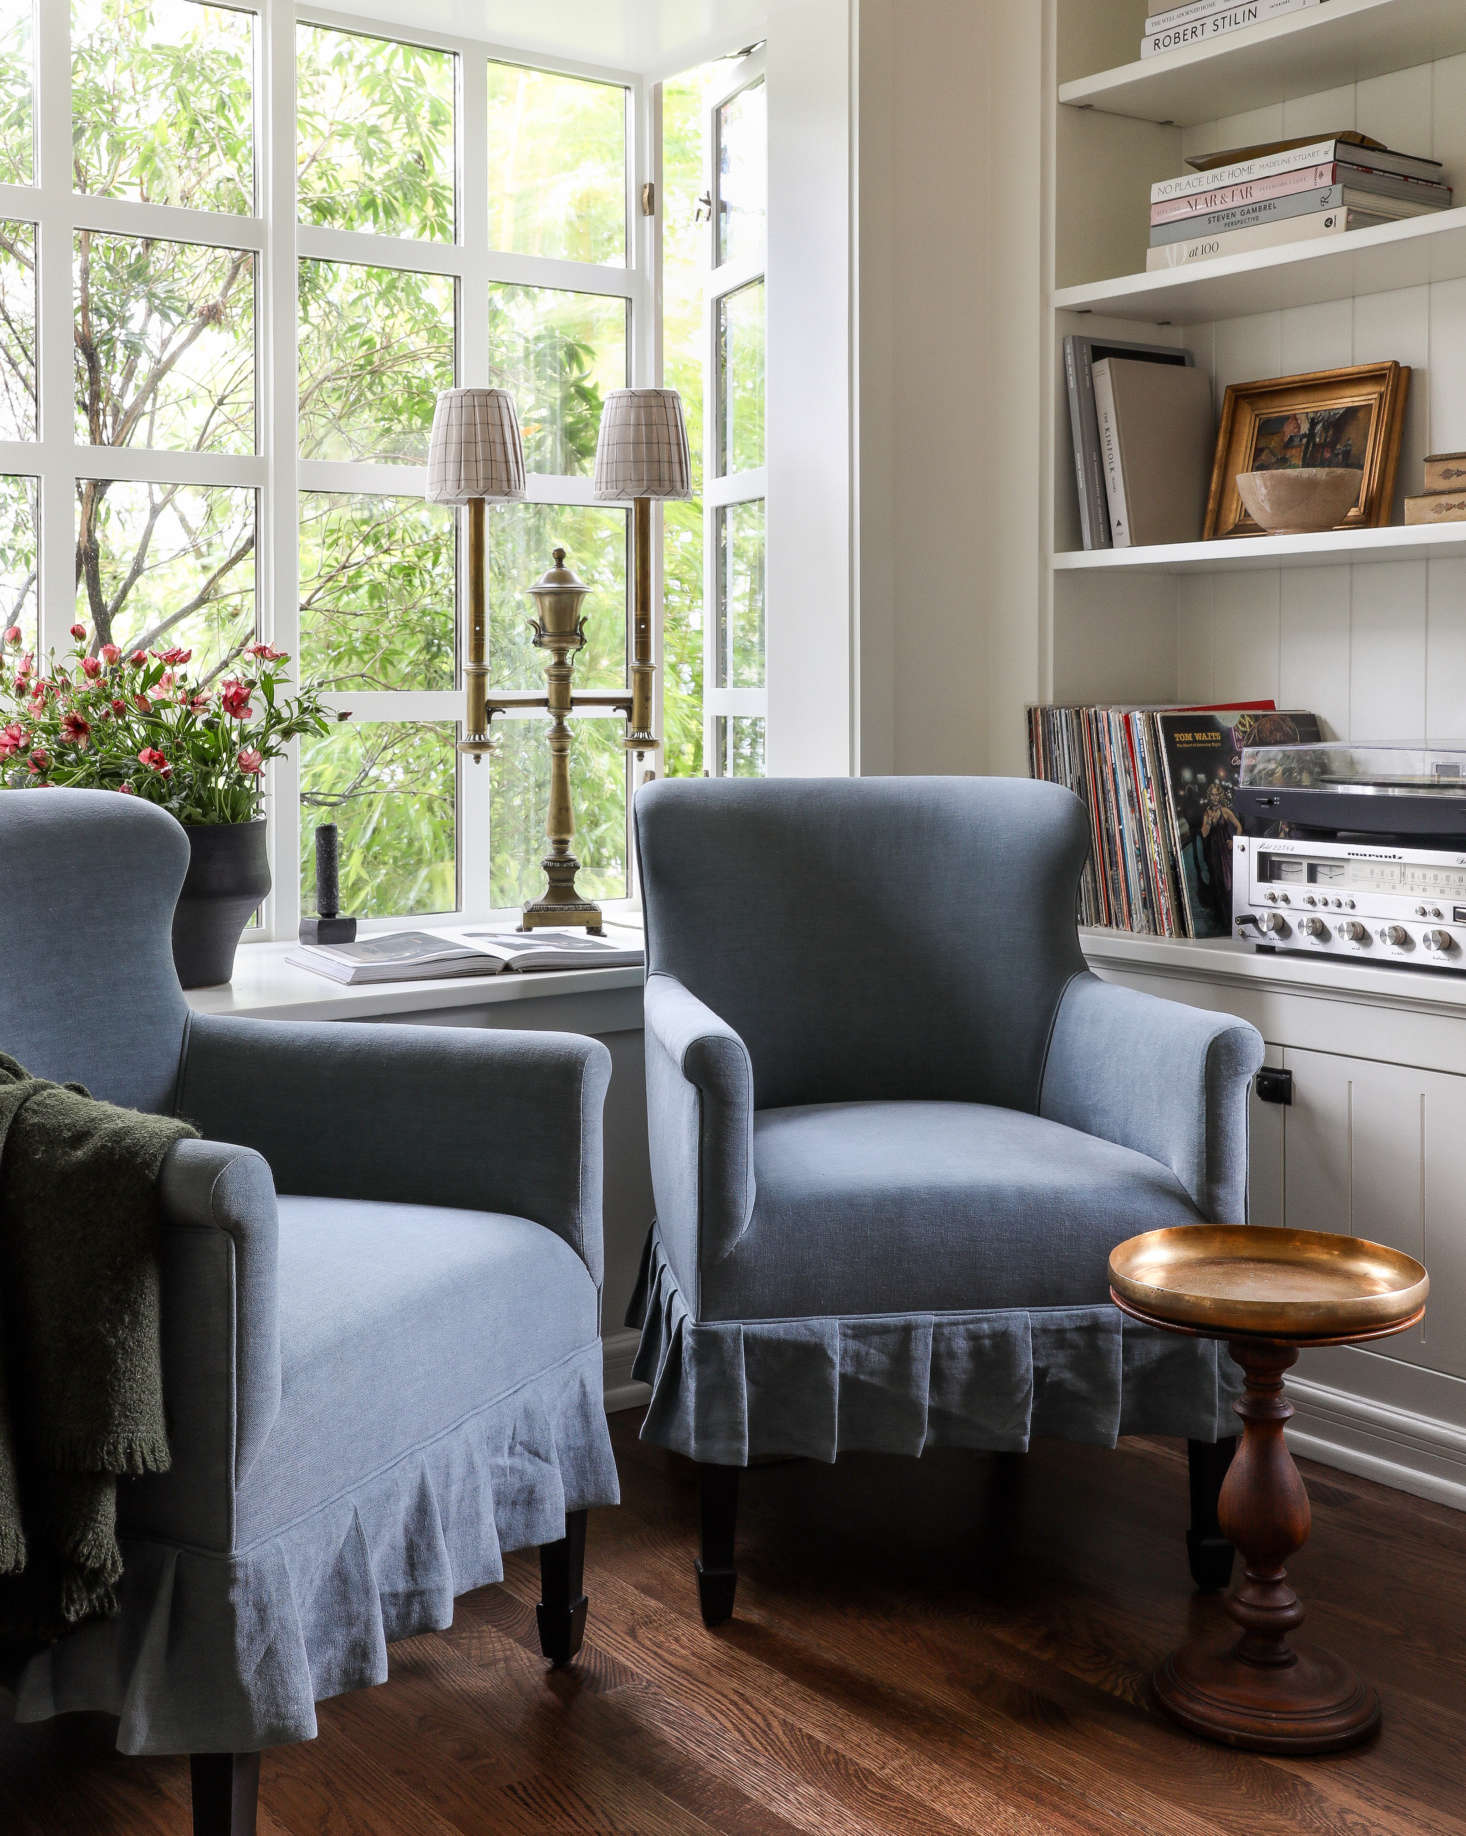 Tailored granny chic: Caillier designed skirted armchairs for the music corner of the room.